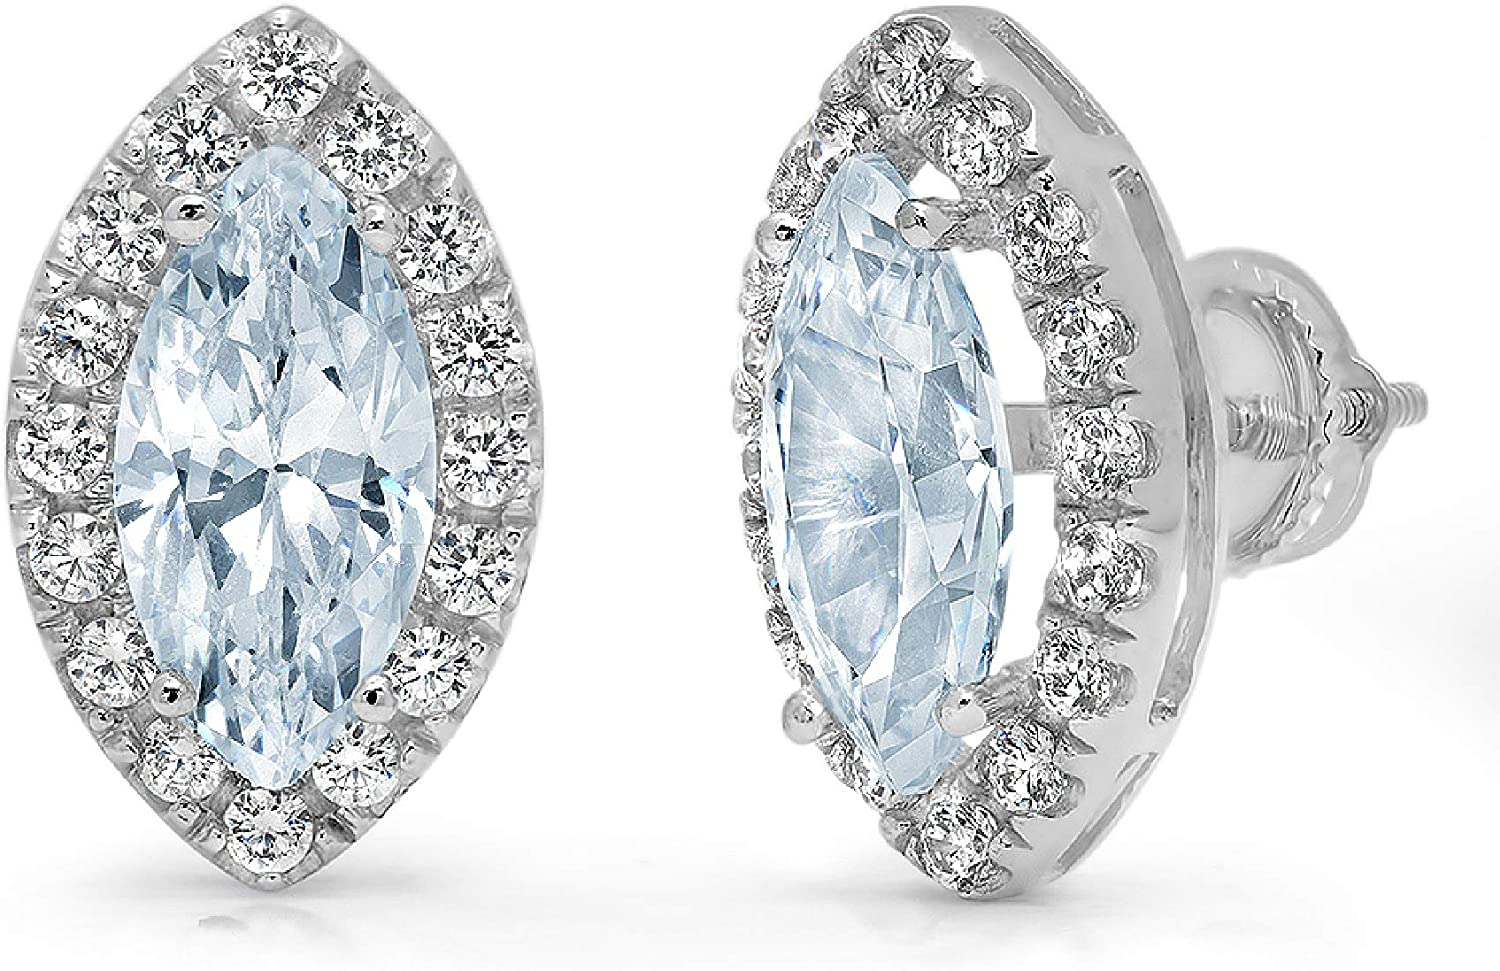 Max 42% OFF Outlet SALE Clara Pucci 3.64 ct Brilliant Cut Halo Solitaire Round Marquise